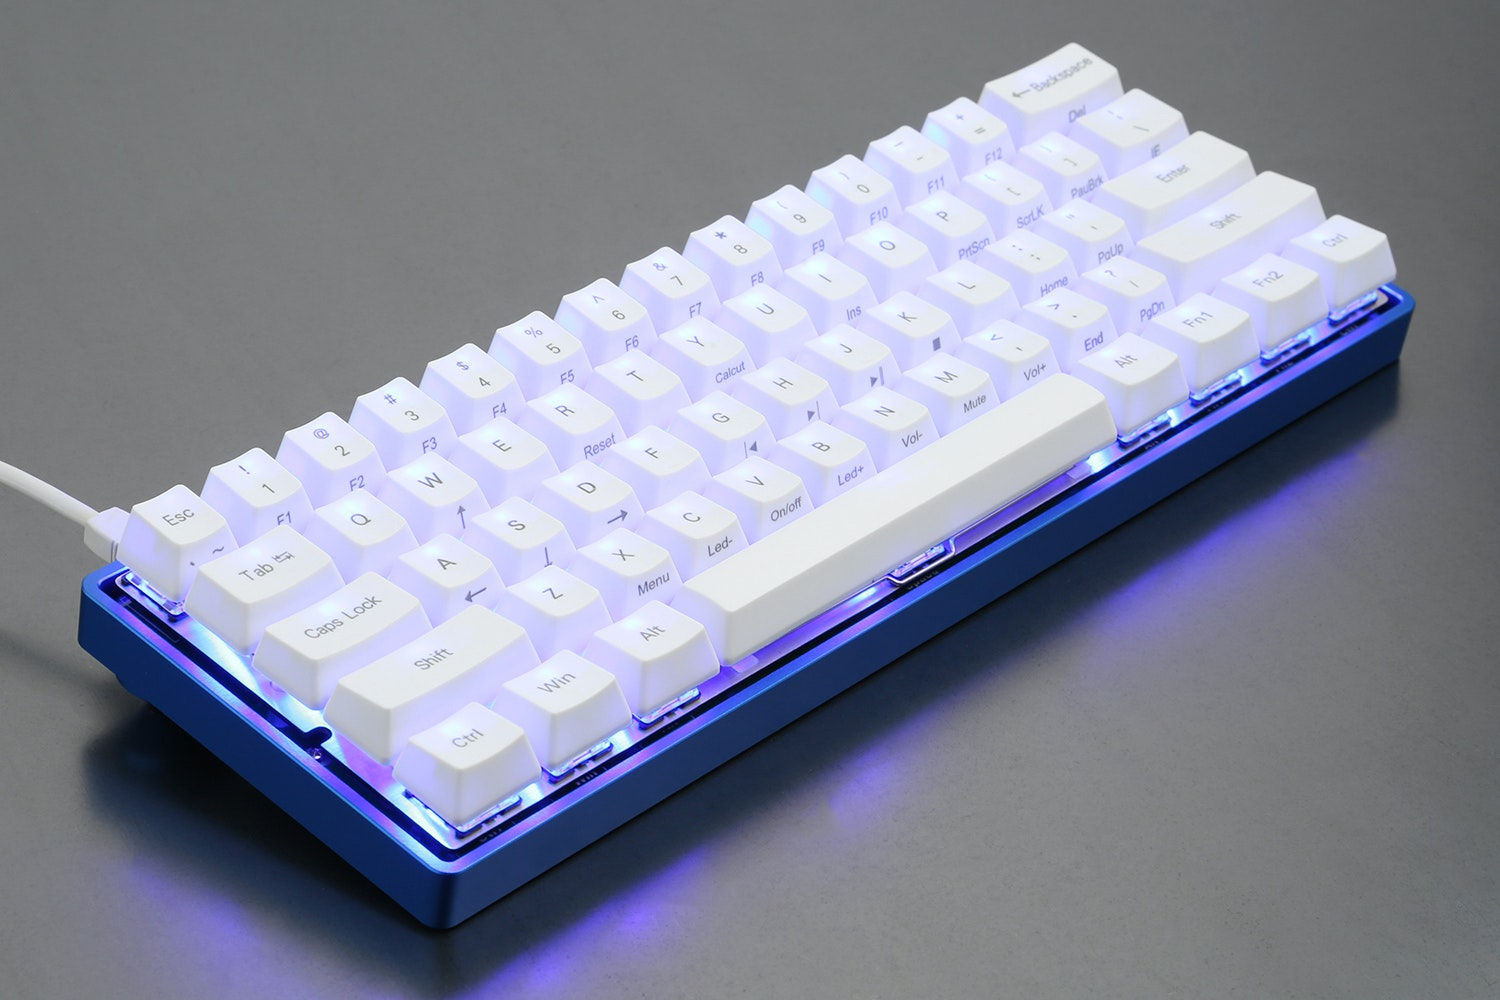 60% Keyboard Low-Profile Aluminum Case